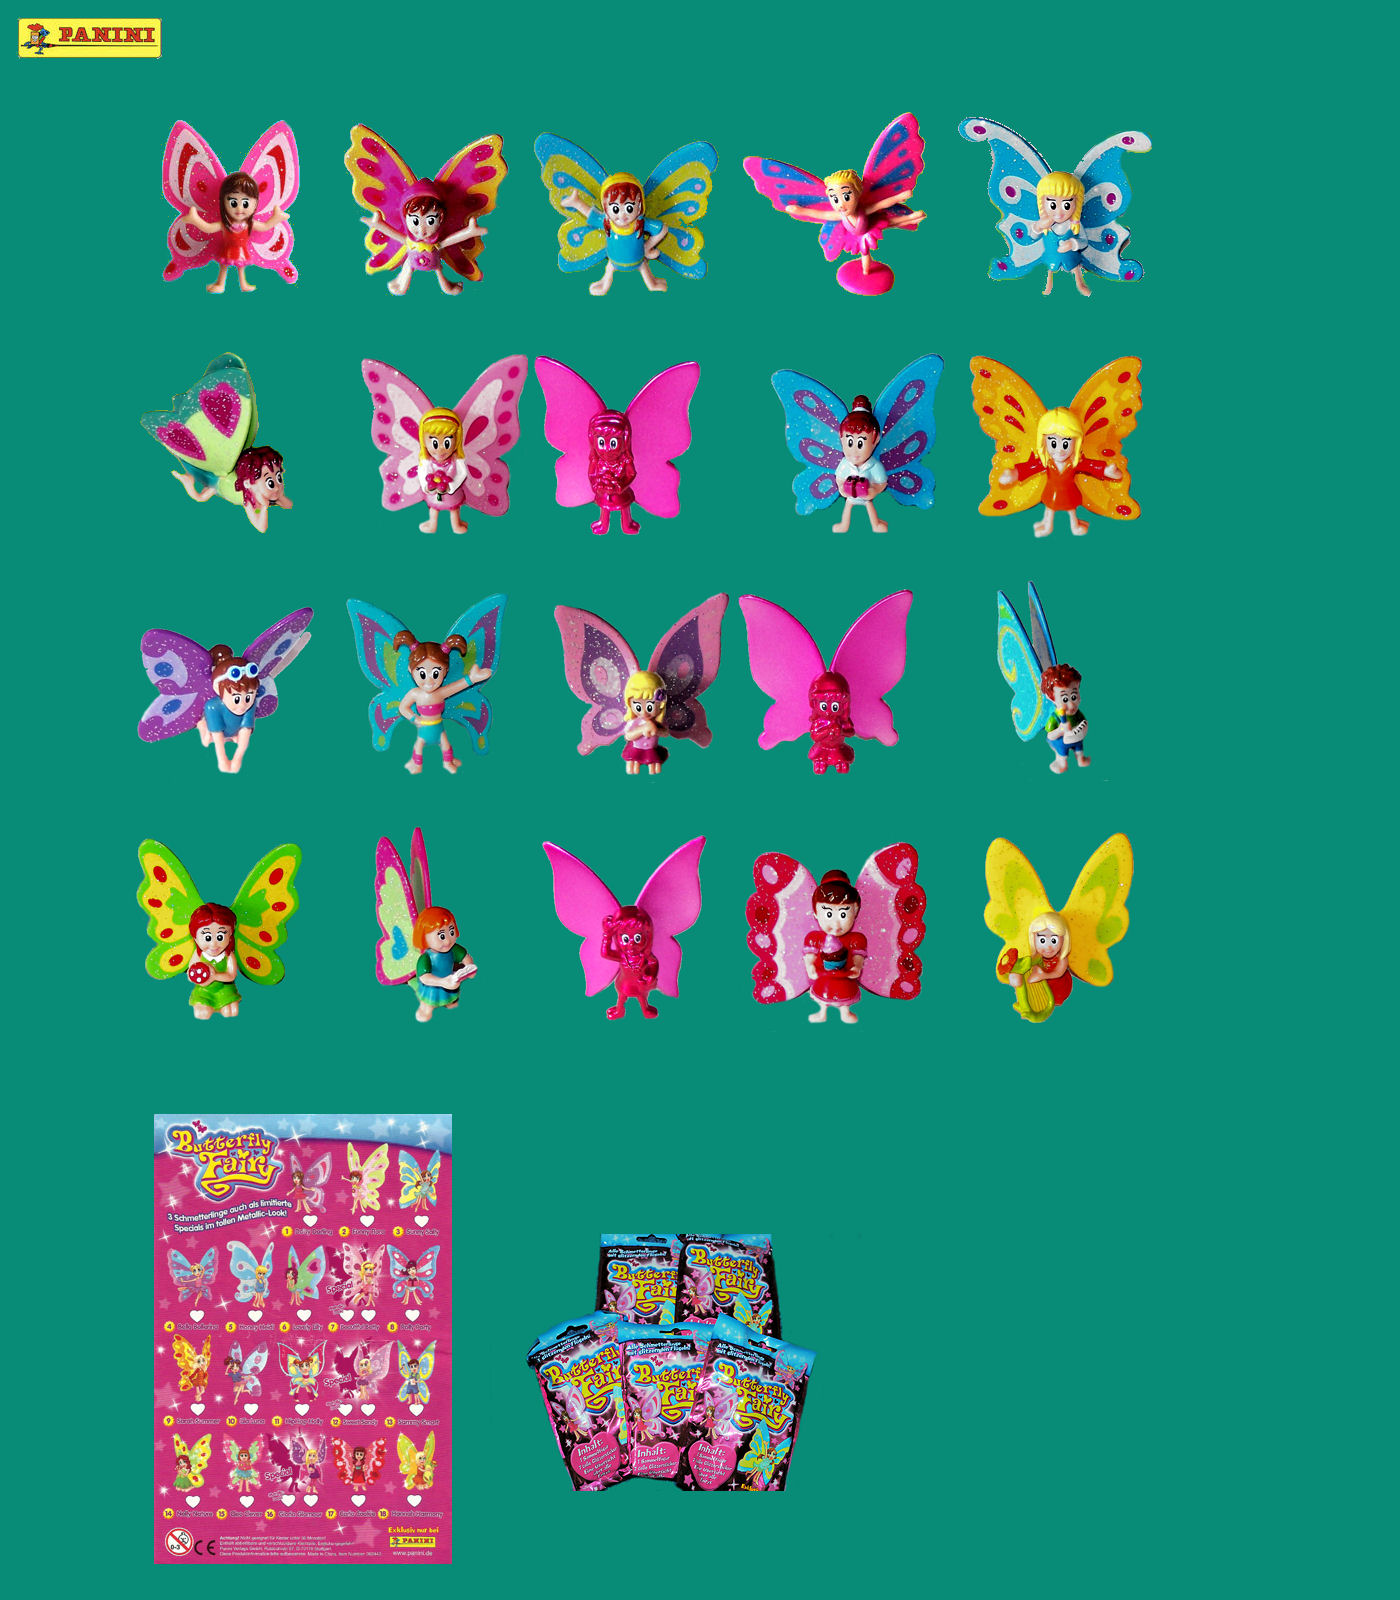 panini butterfly